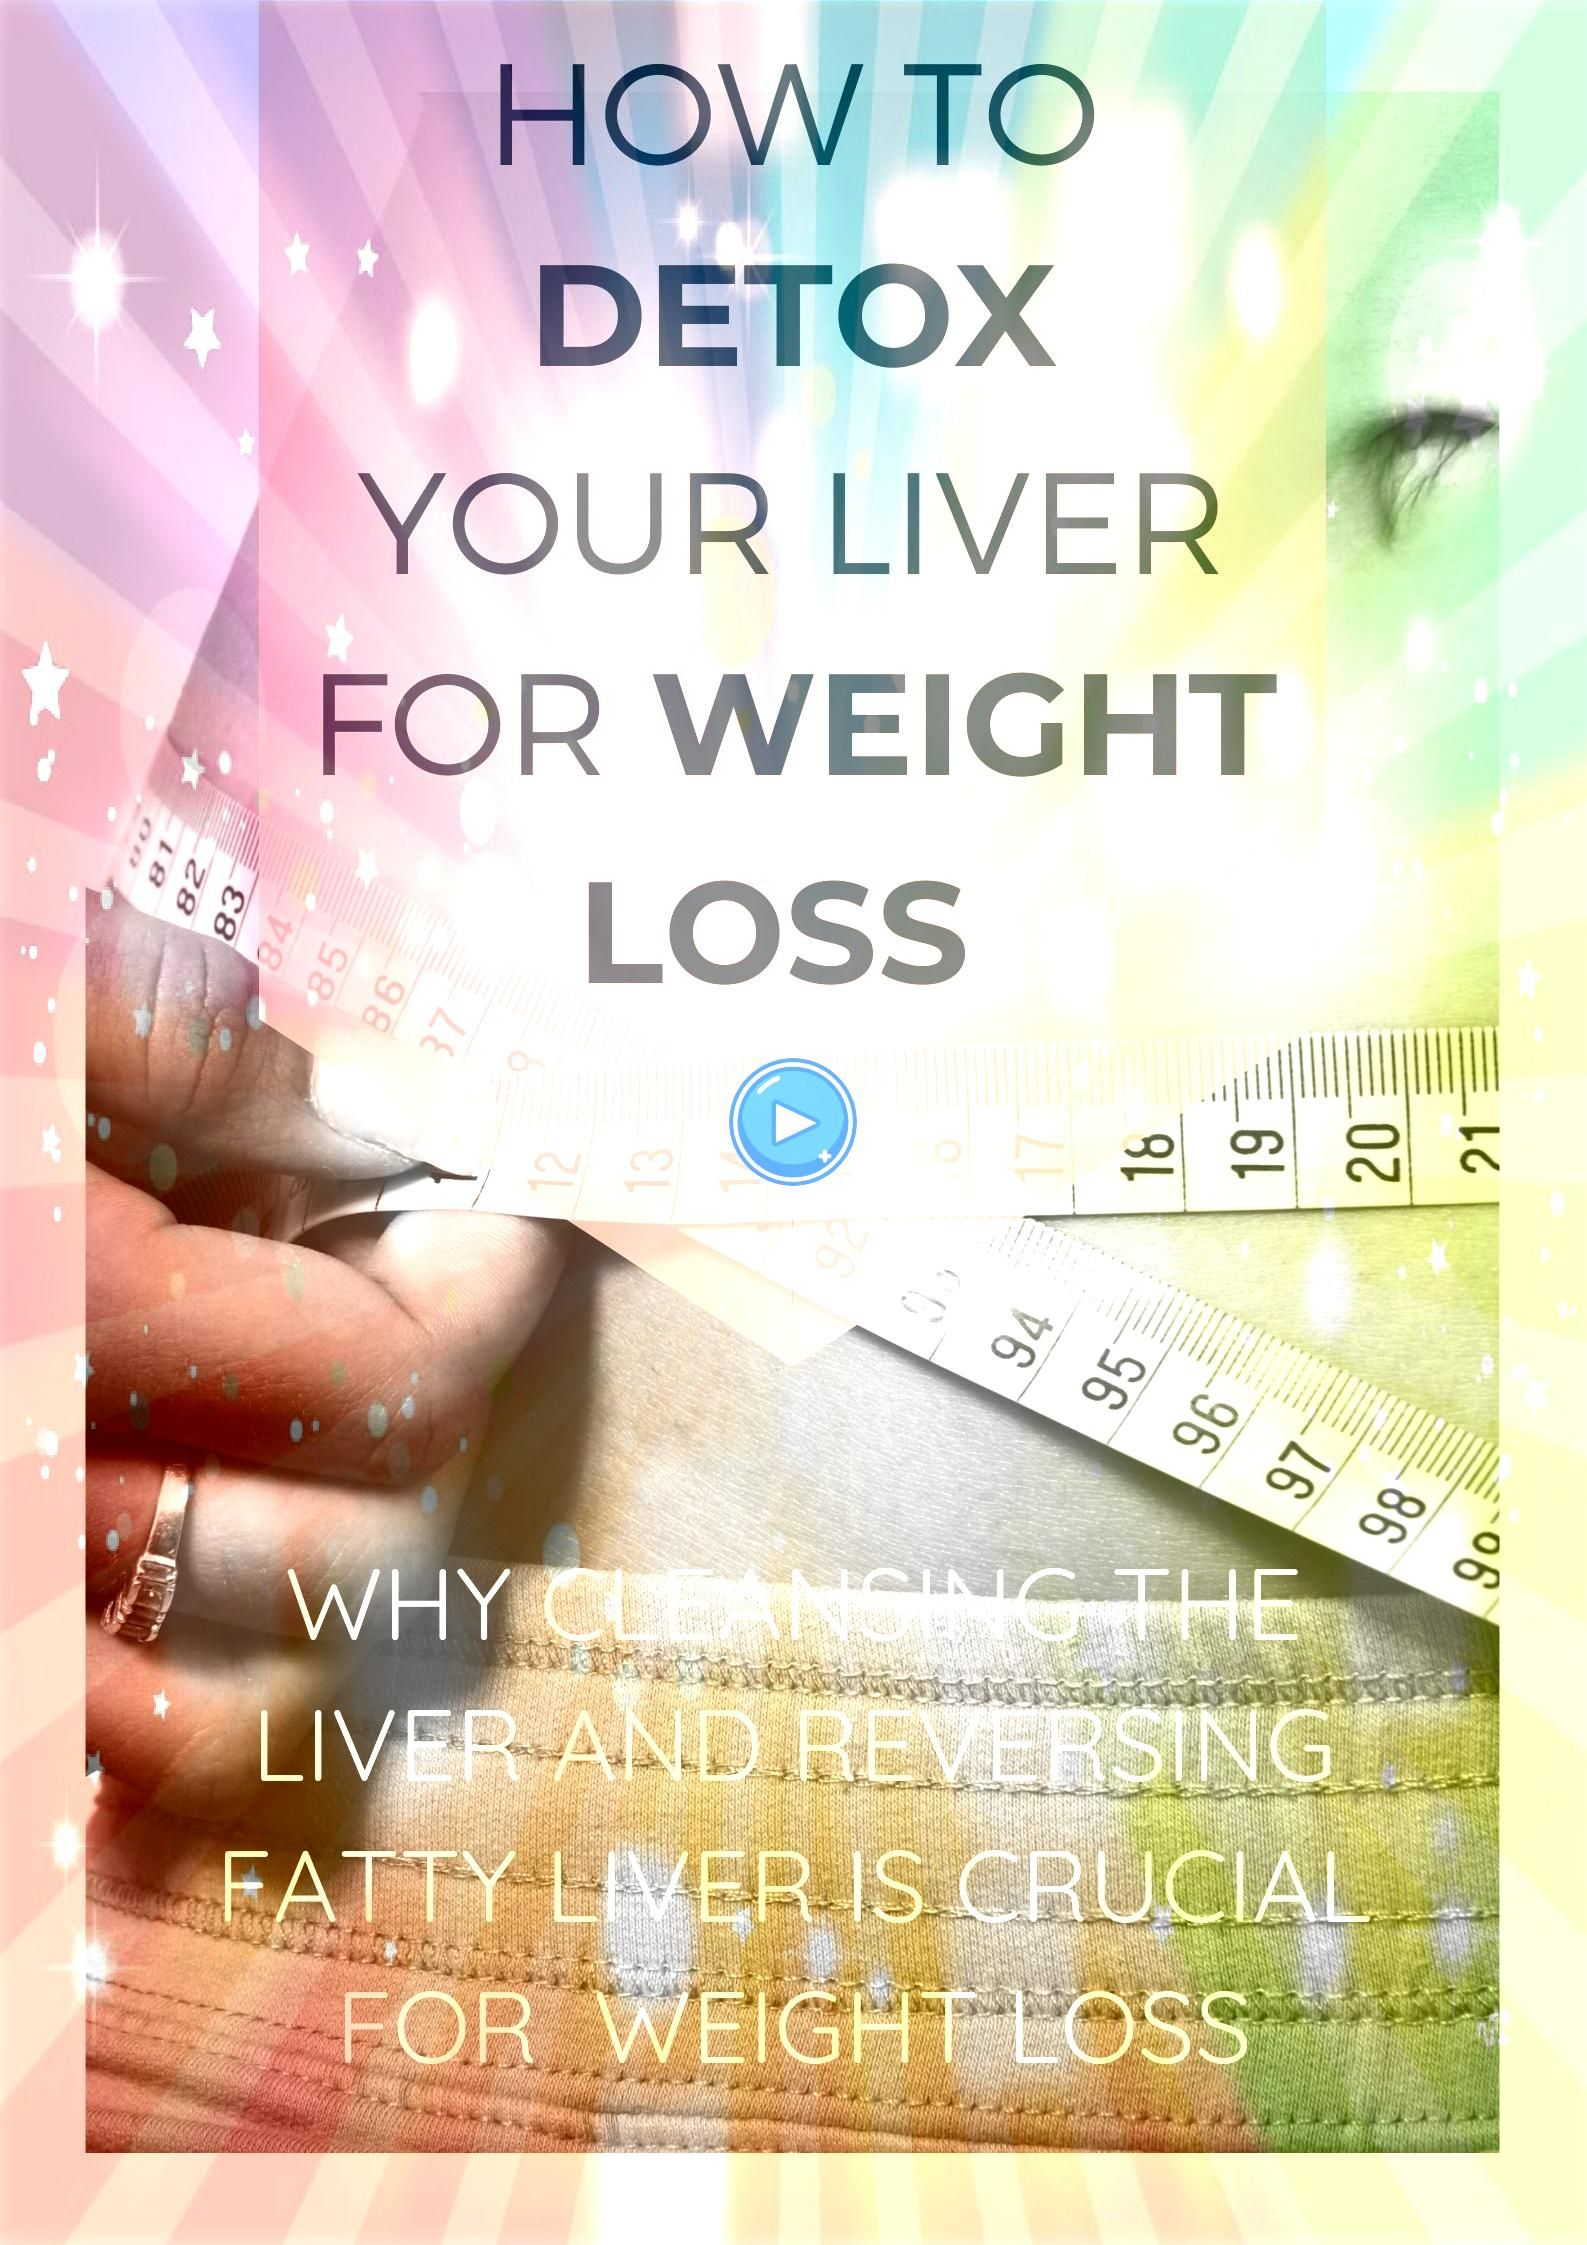 To Detox Your Liver for Weight Loss Do you want to know how to detox your liver for weight loss and why cleansing the liver and reversing fatty liver is crucial for weigh...